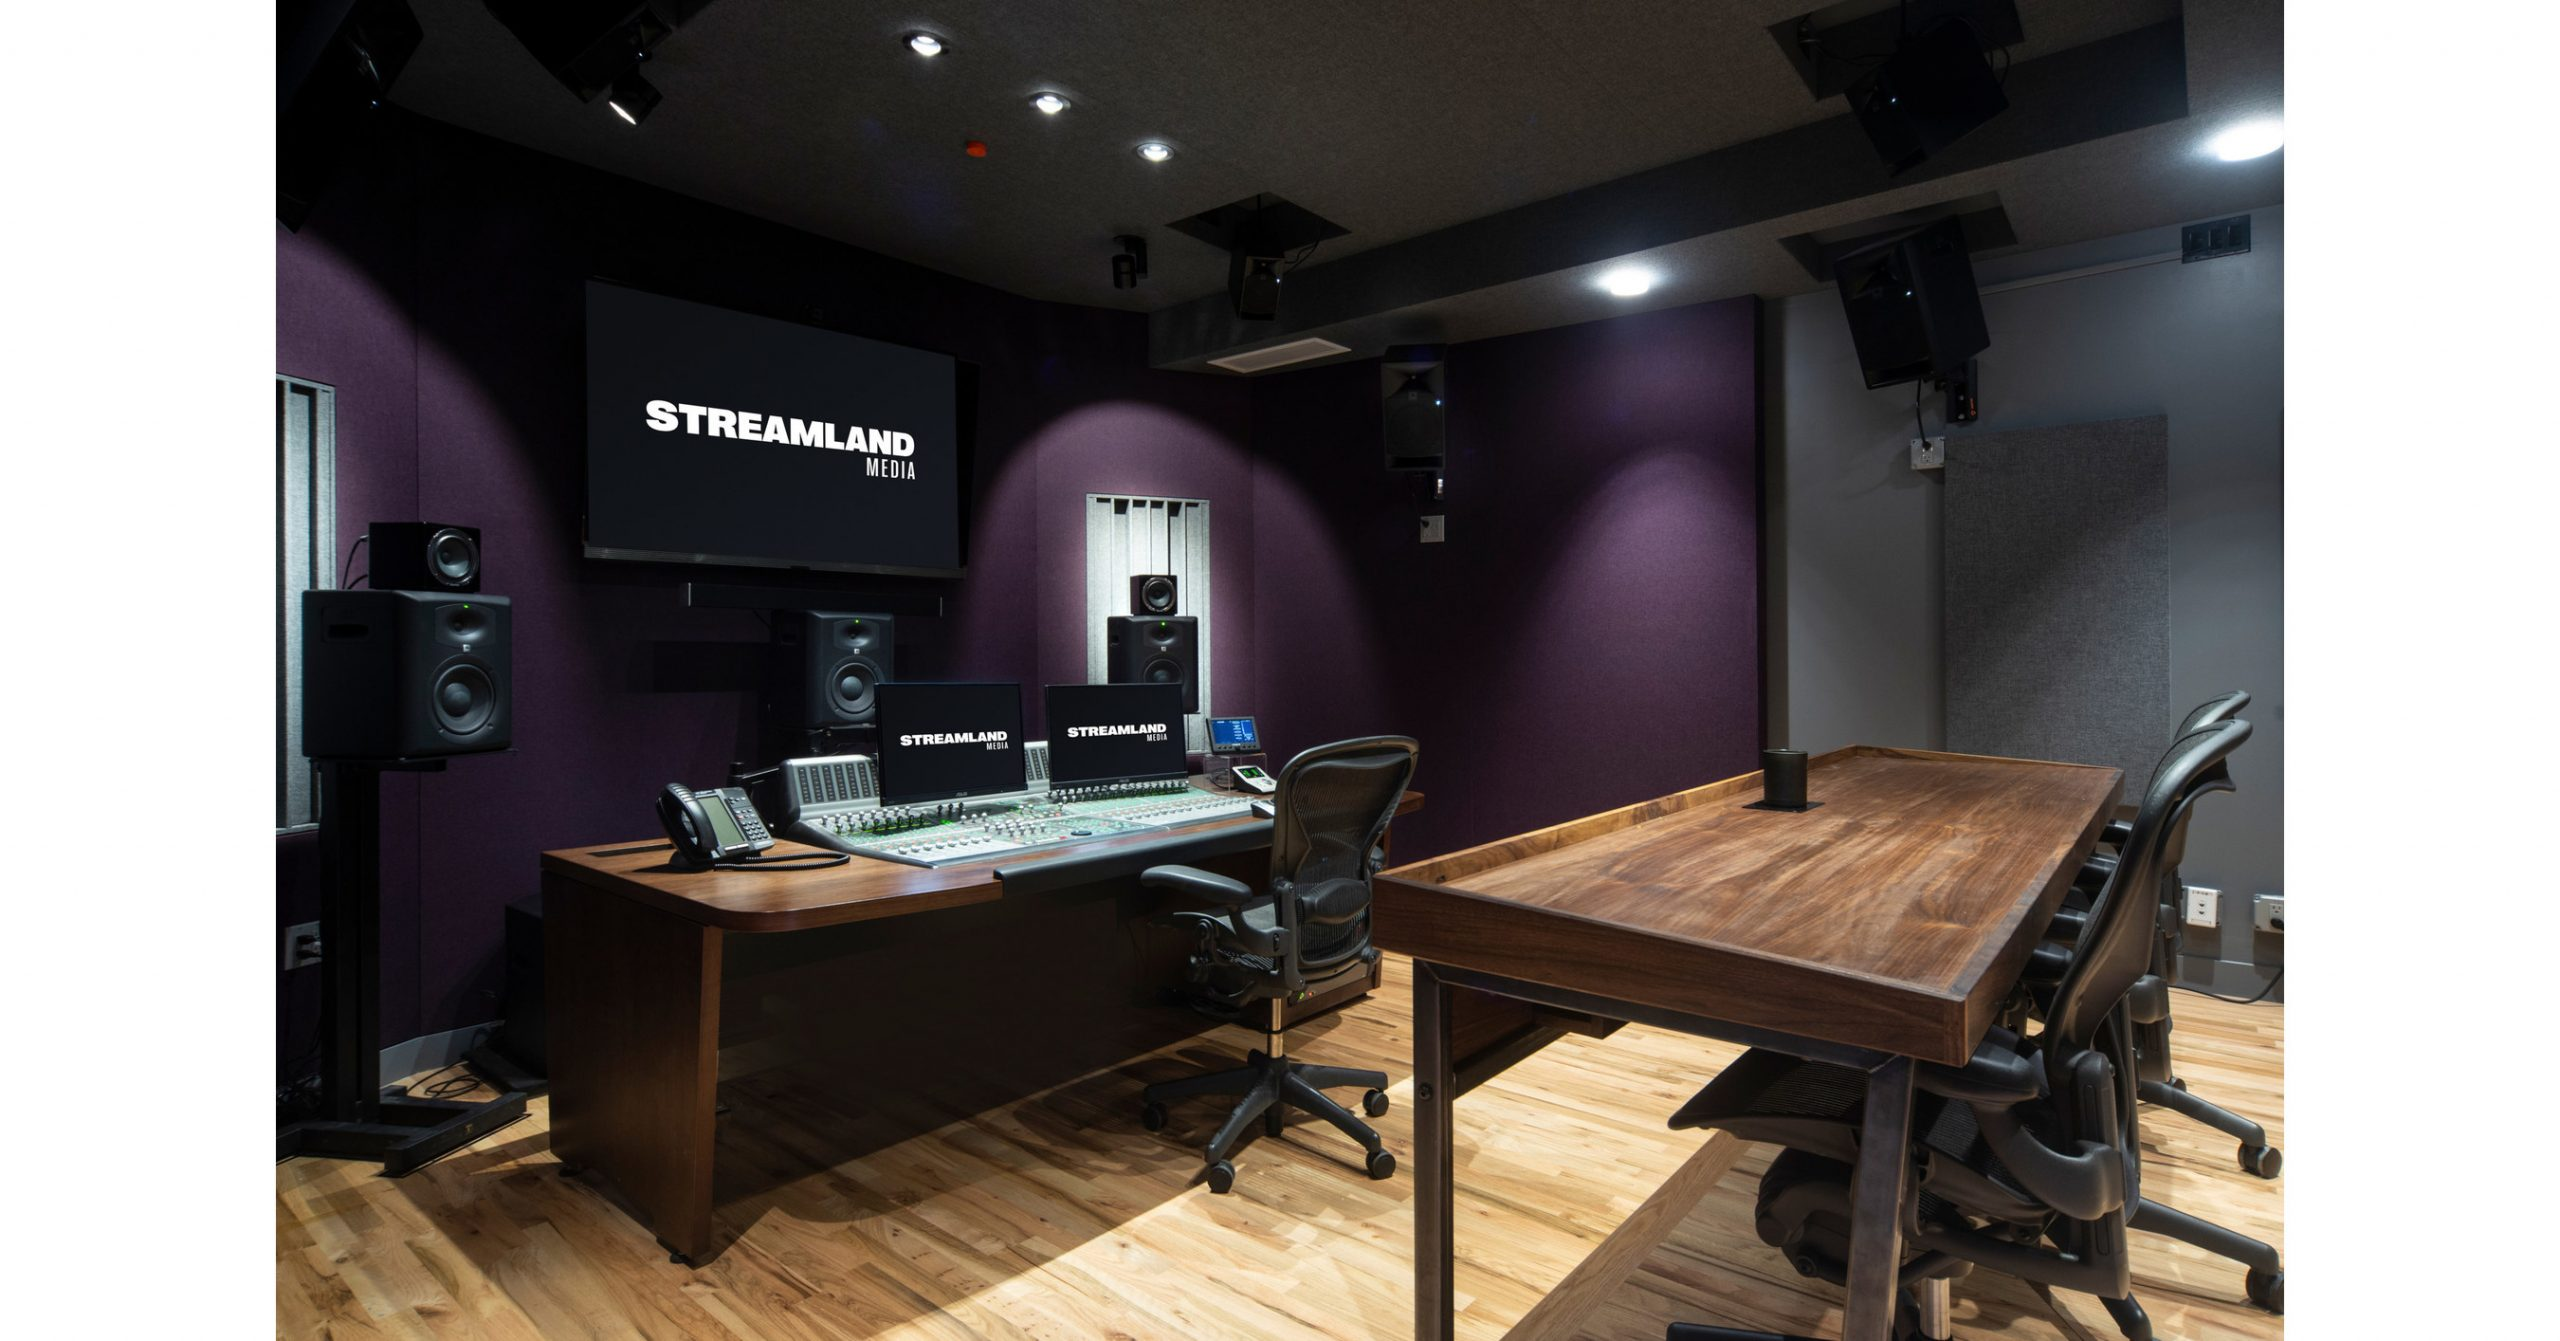 Streamland Media completes acquisition of SIM Post